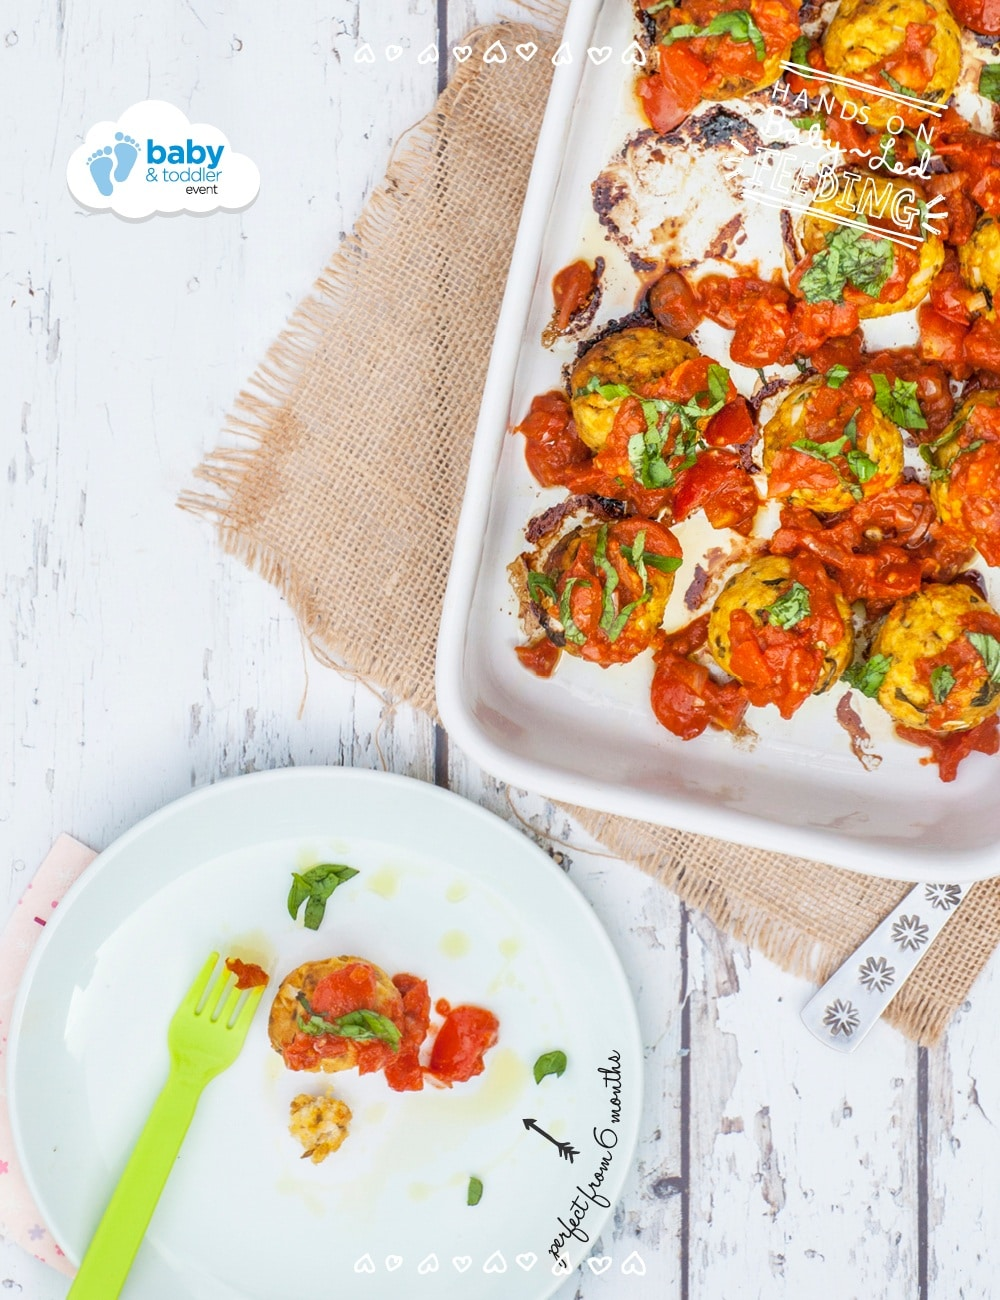 Moroccan Turkey Meatballs. Recipe image for recipe. Homemade Baby Food Recipes perfect for little hands. Delicious baby weaning recipe from Aileen Cox Blundell author of The Baby Led Feeding Cookbook.